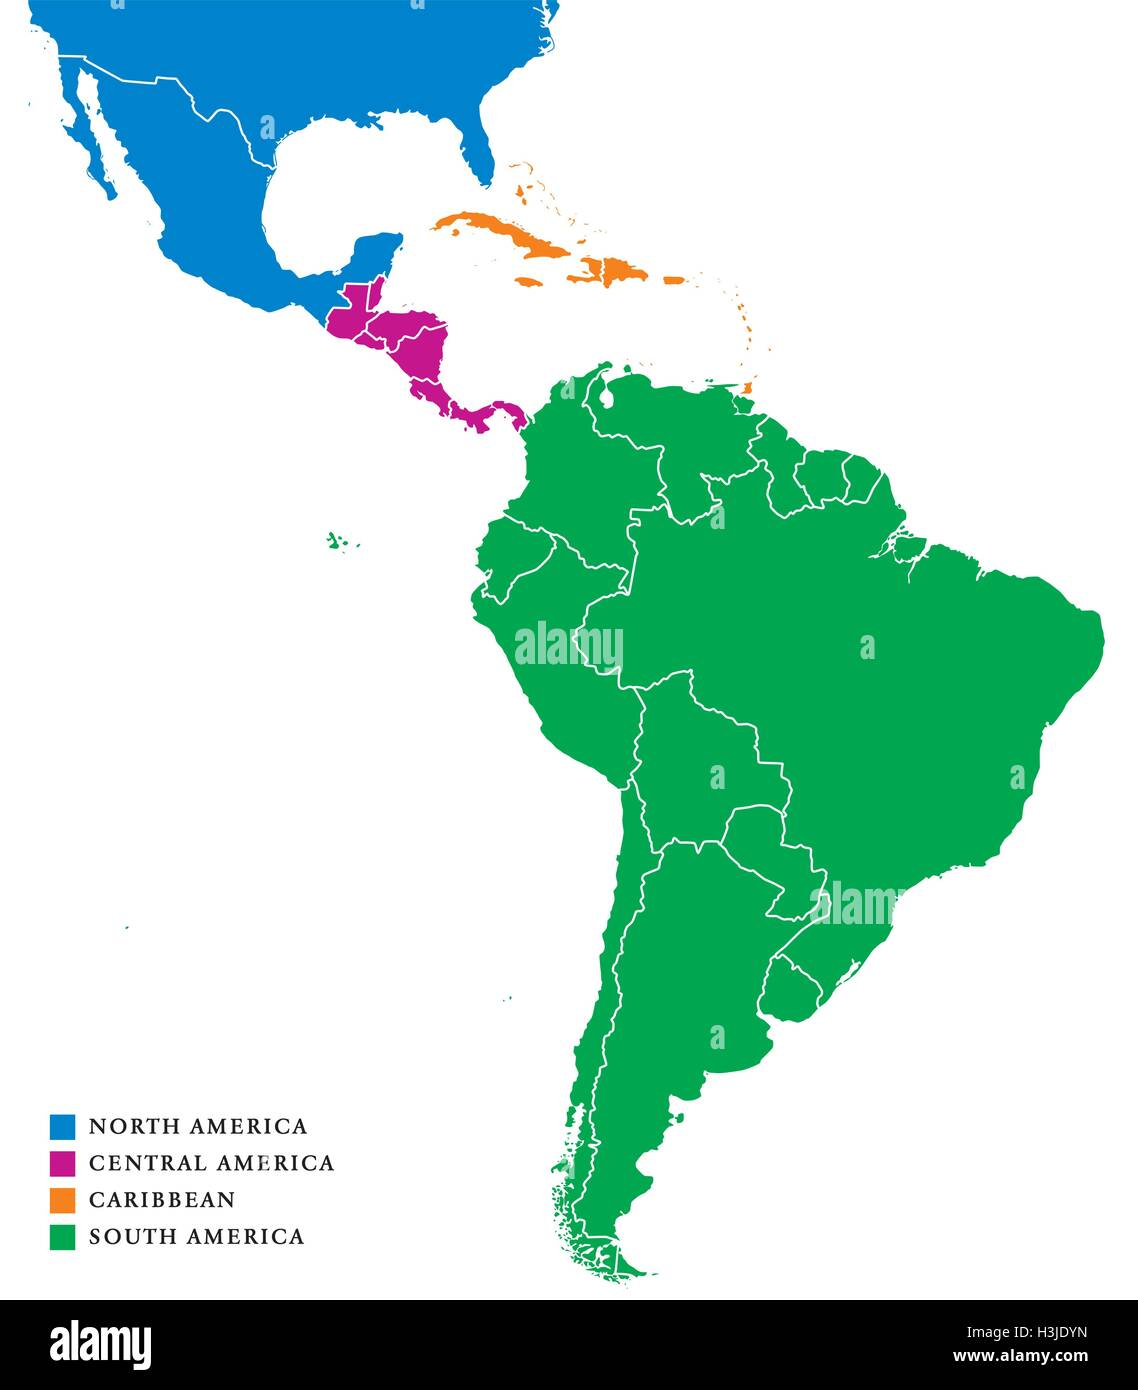 Latin america subregions map the subregions caribbean for What color is south america